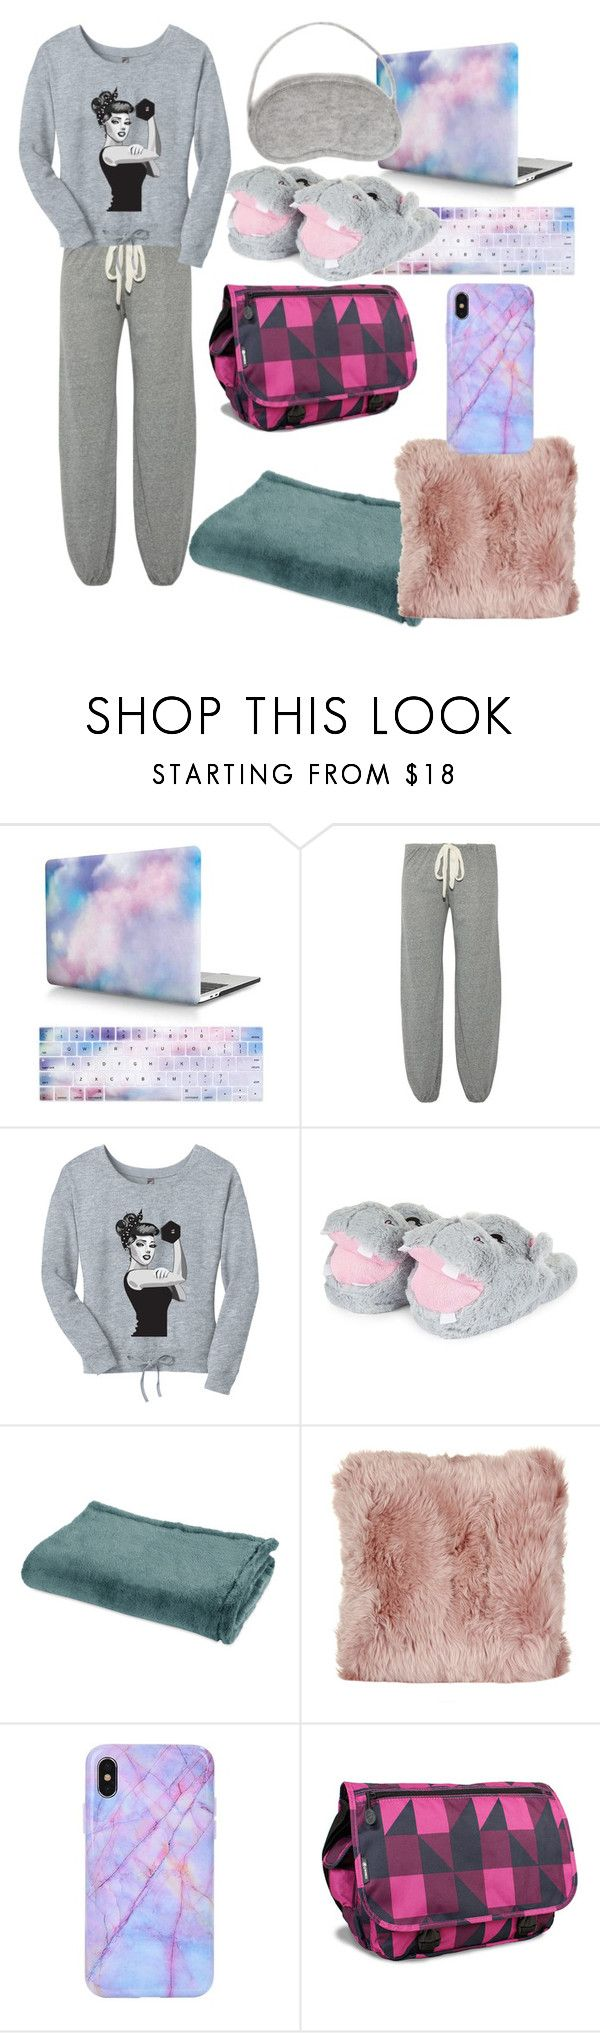 """Naruto OC pjs"" by ihearthawkeye ❤ liked on Polyvore featuring Eberjey, White + Warren, Berkshire Blanket, A by Amara and JWorld"